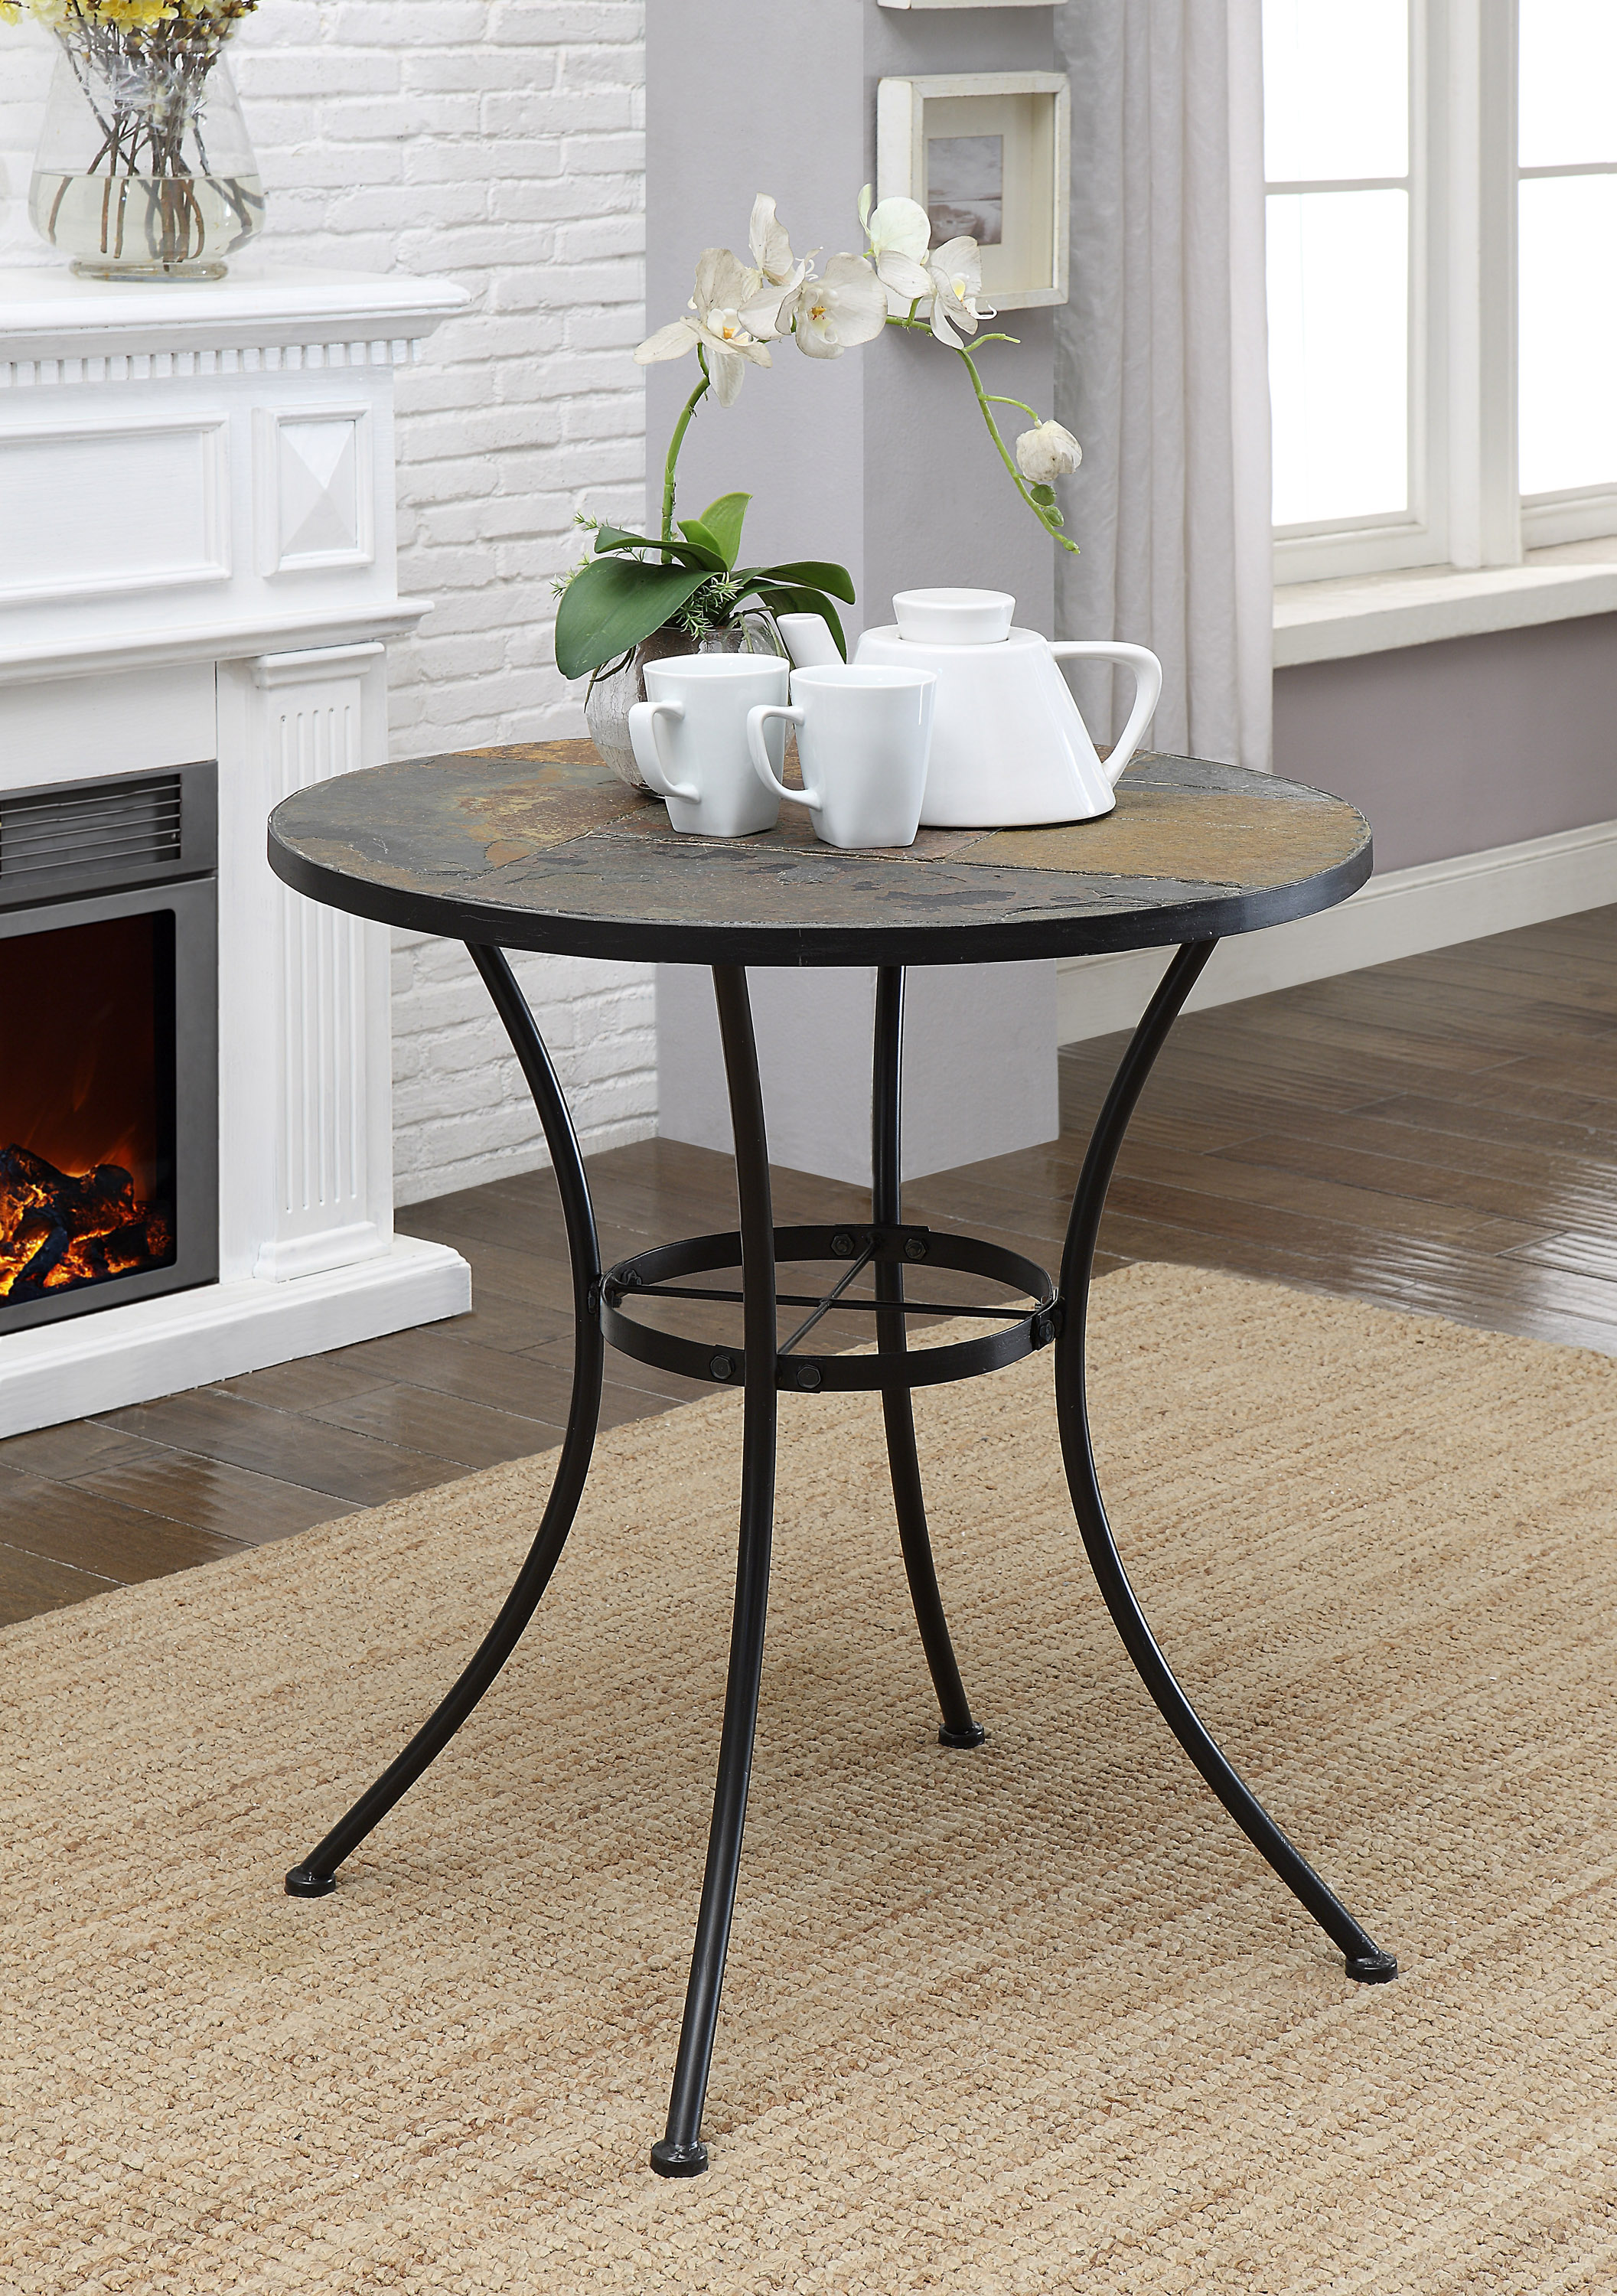 4D Concepts 601611 Round Table with Slate Top - Metal/Slate